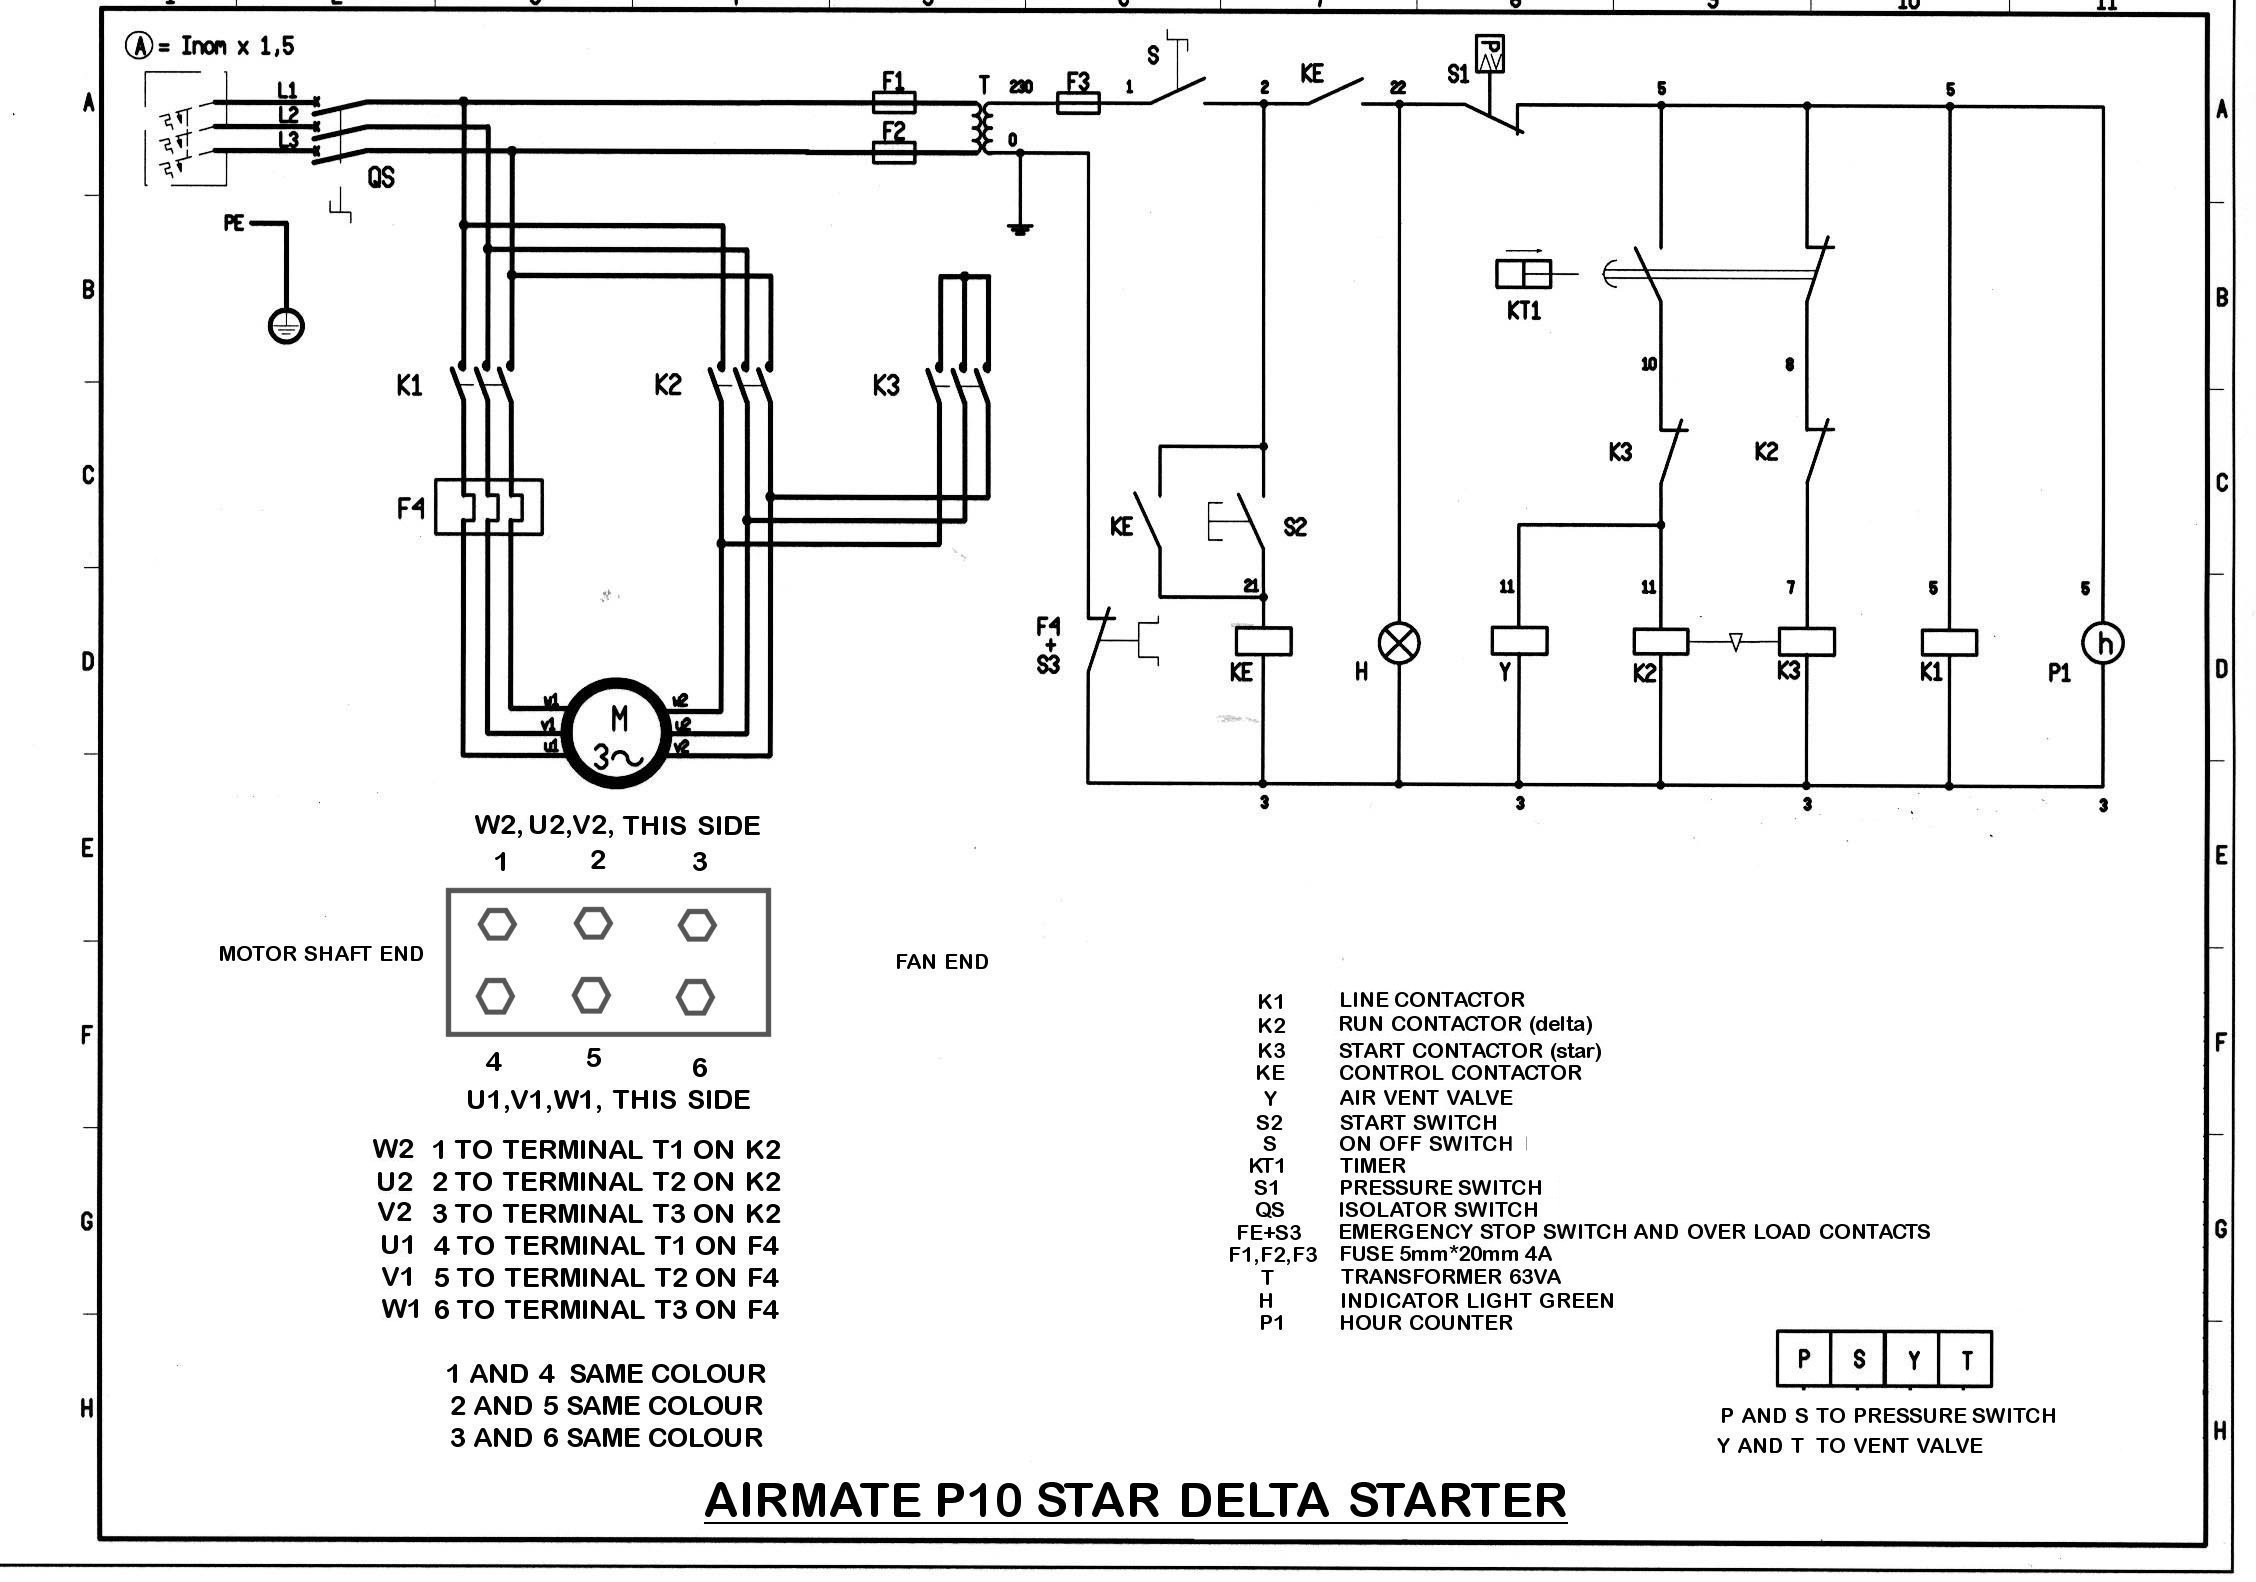 Ingersoll Rand Air Compressor Wiring Diagram Ingersoll Rand Air Pressor Wiring Diagram Simple atlas Copco Ar Of Ingersoll Rand Air Compressor Wiring Diagram